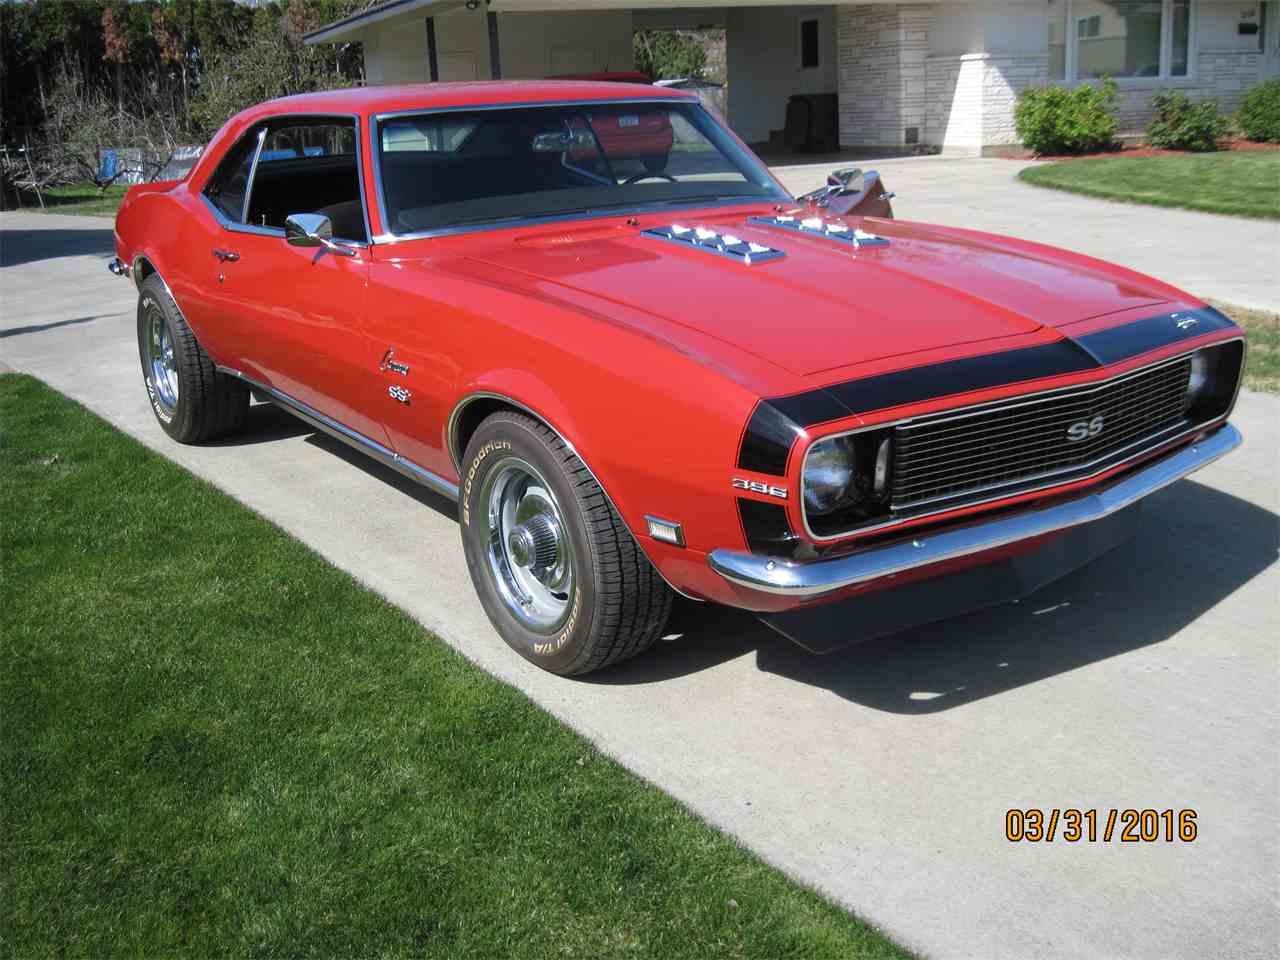 Large Picture of Classic '68 Chevrolet Camaro RS/SS located in Washington - $58,000.00 - H5KU